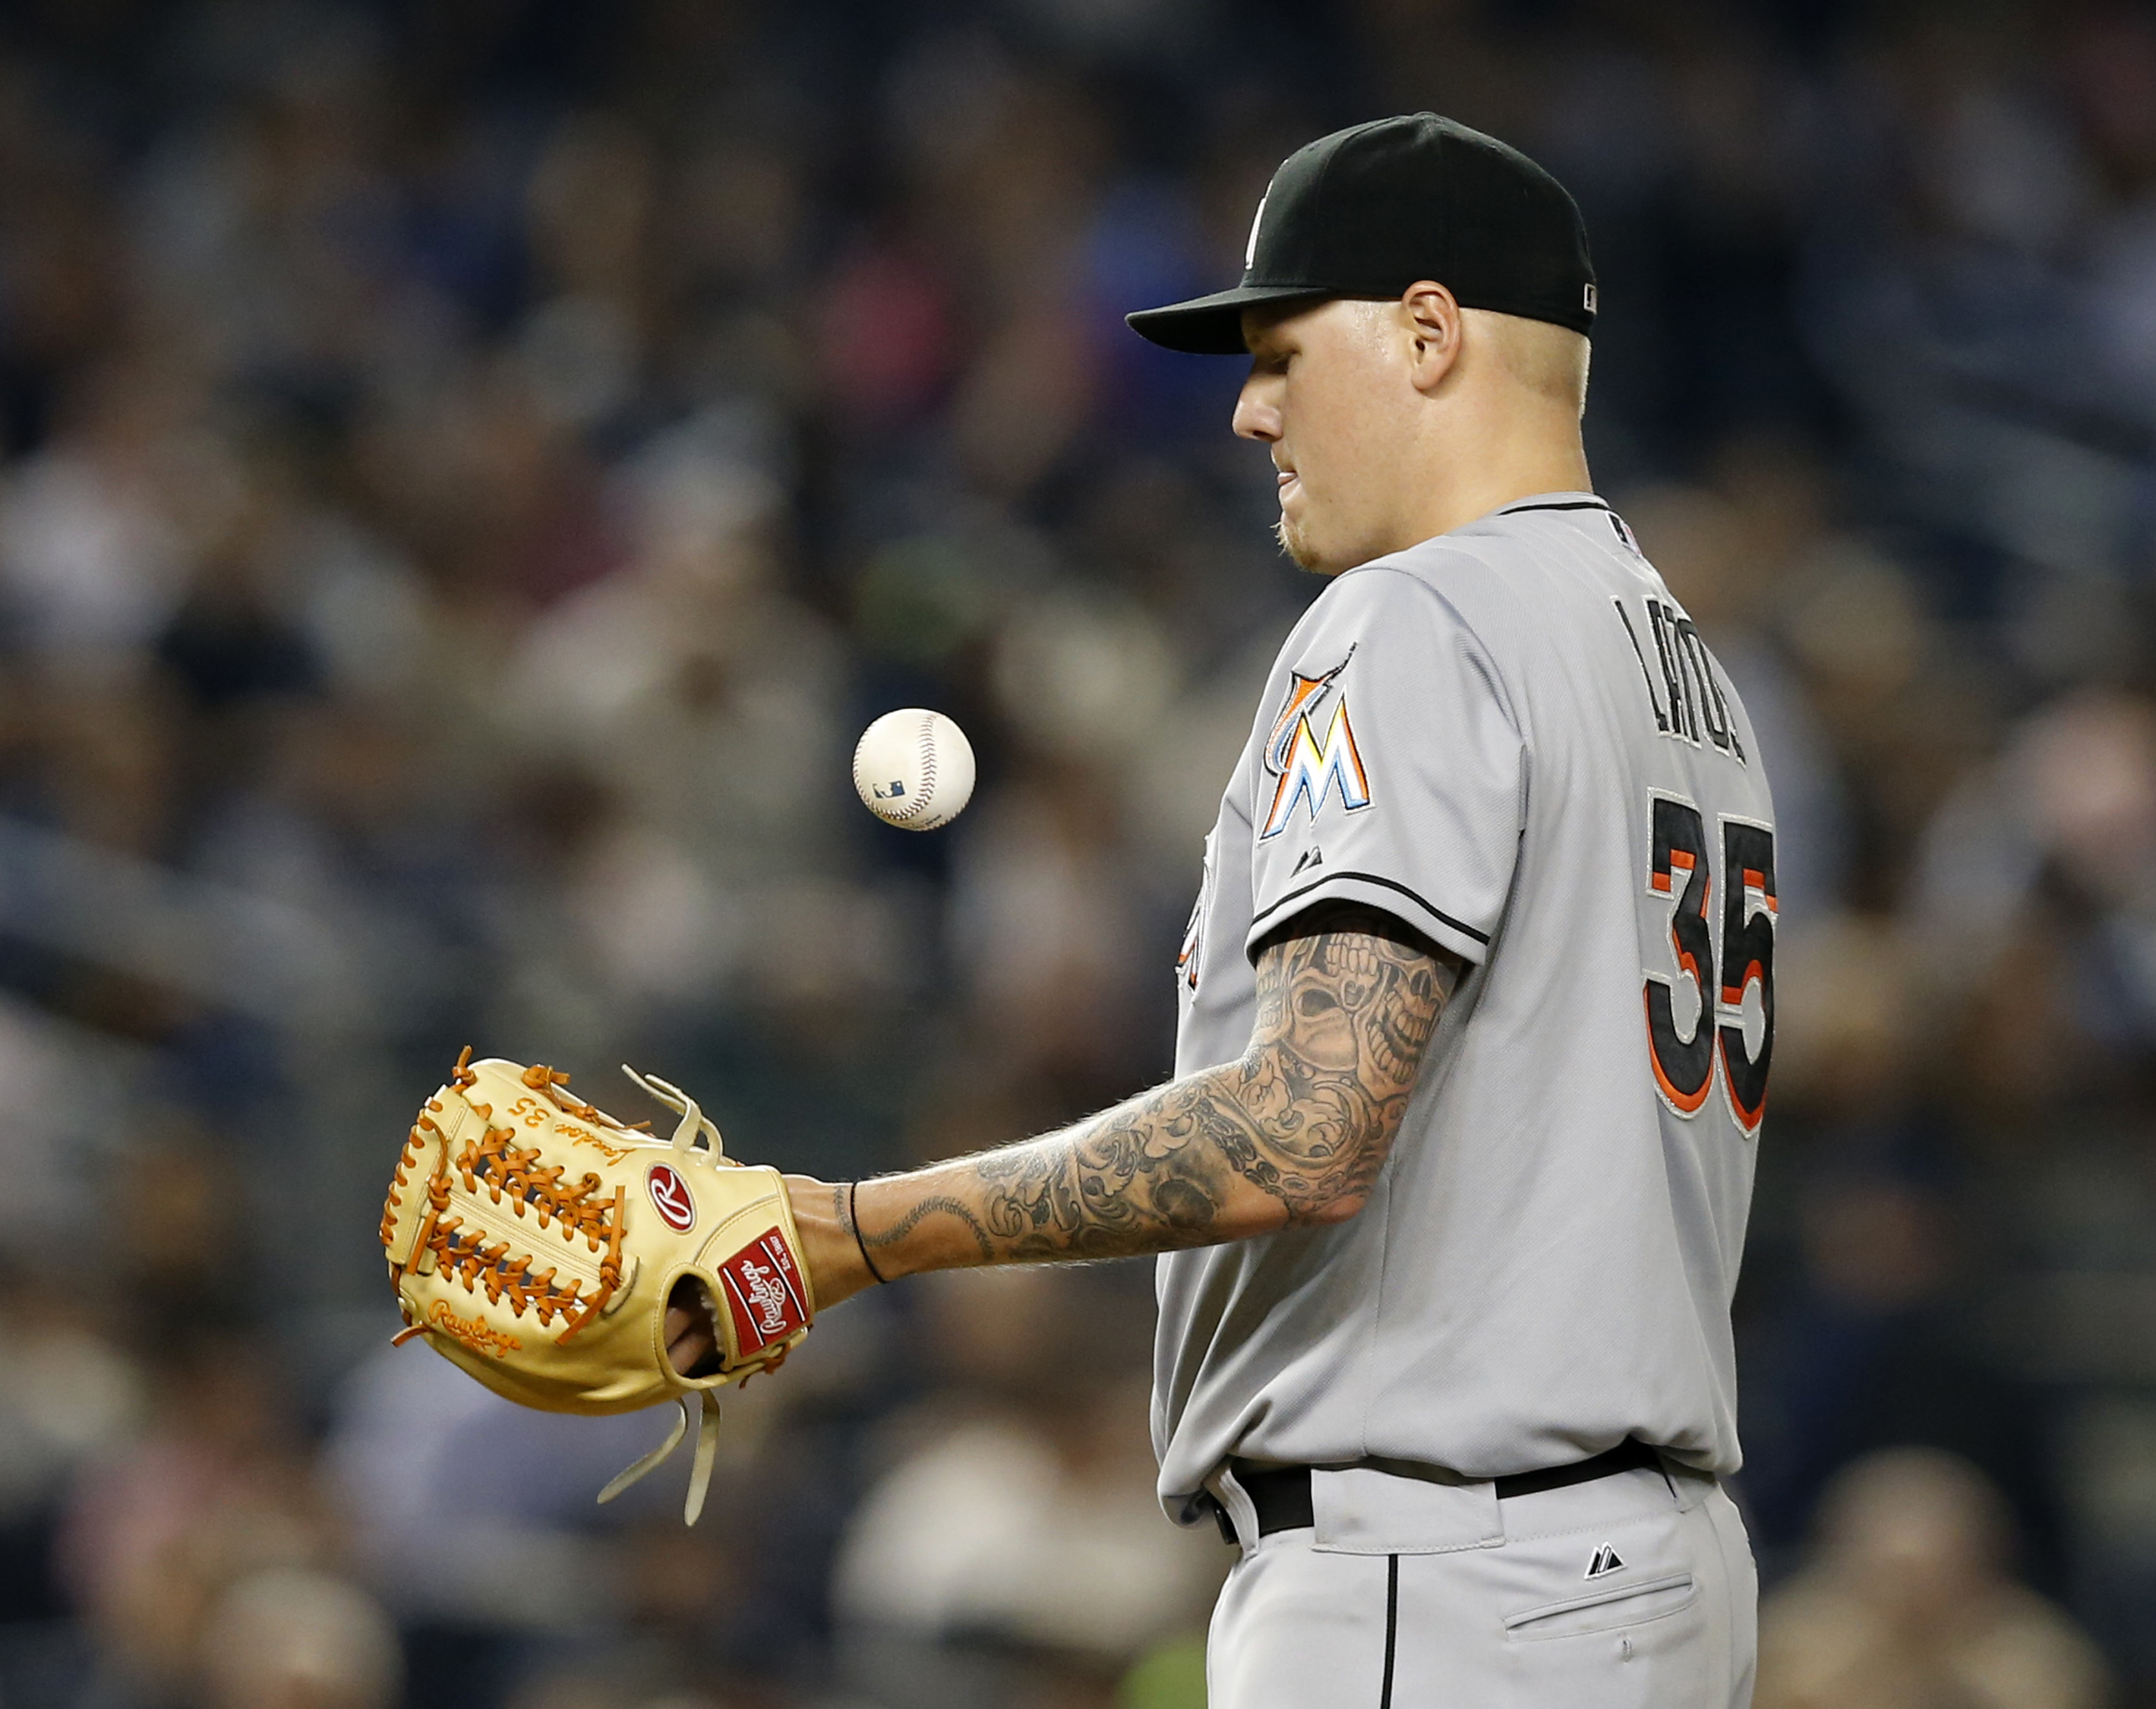 Miami Marlins starting pitcher Mat Latos (35) reacts after allowing a sixth-inning, two-run, home run to New York Yankees Brett Gardner (11) in a baseball game at Yankee Stadium in New York, Thursday, June 18, 2015.  (AP Photo/Kathy Willens)